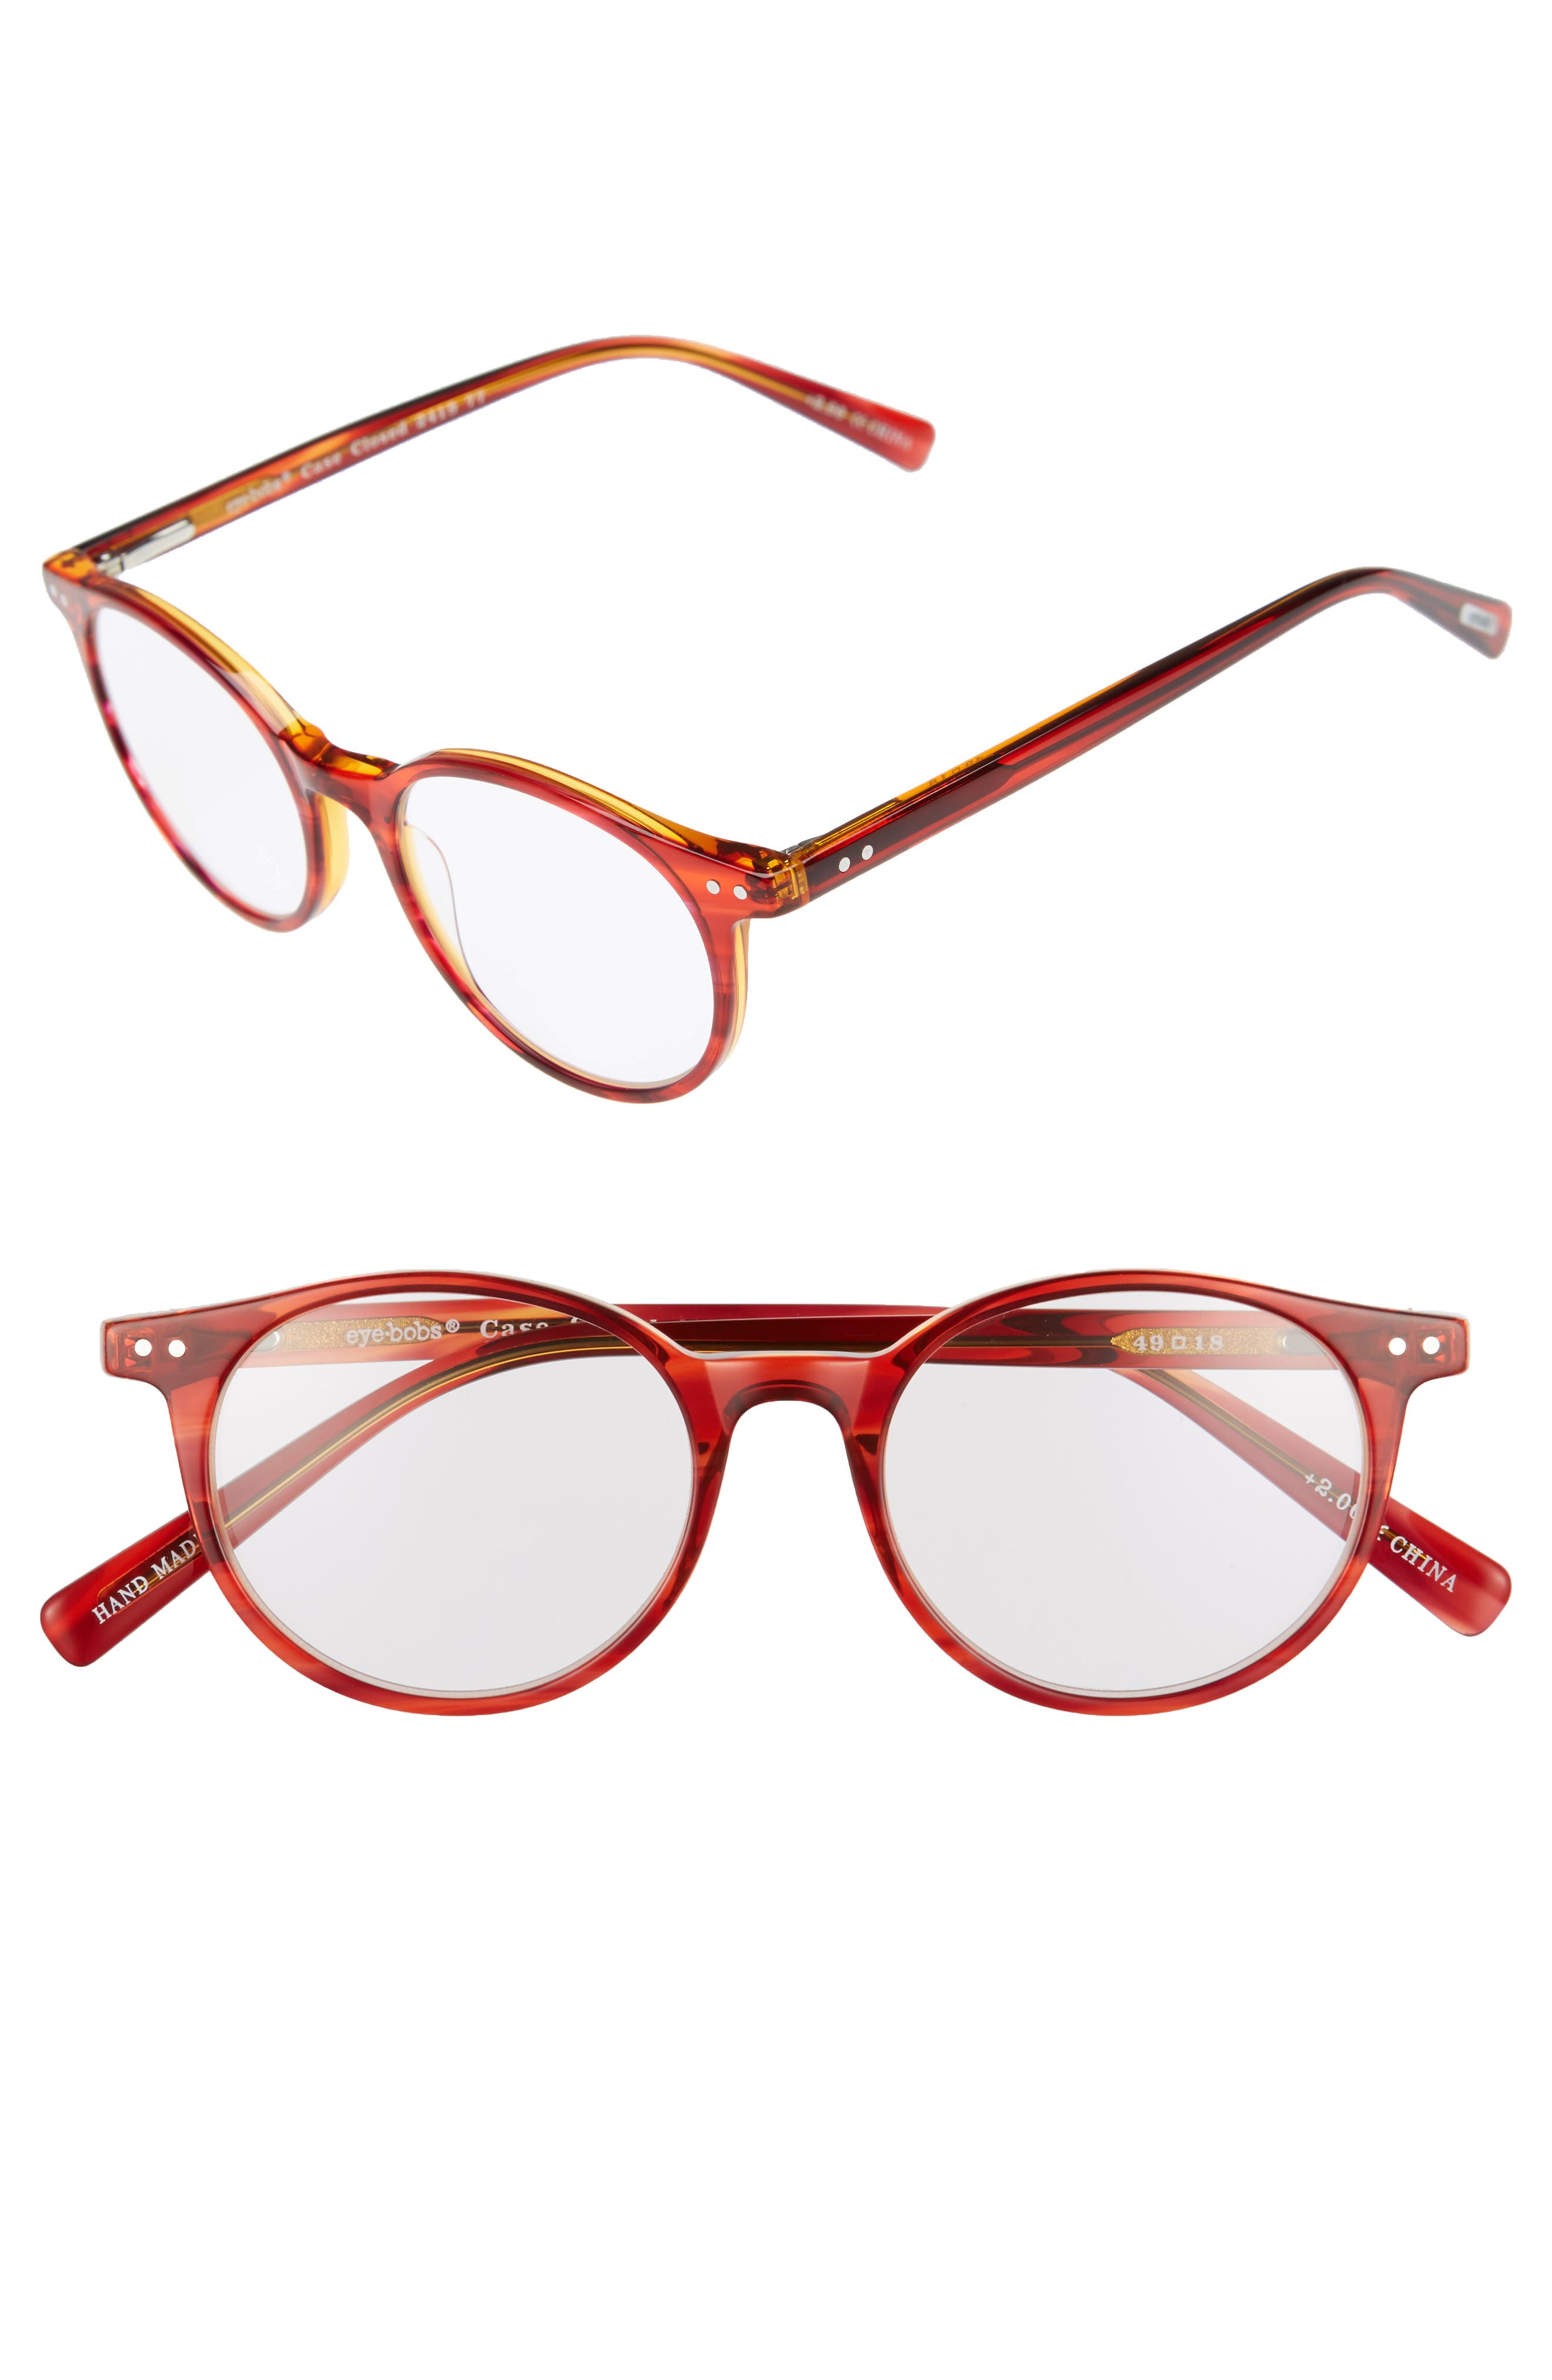 Main Image - Eyebobs Case Closed 49mm Reading Glasses